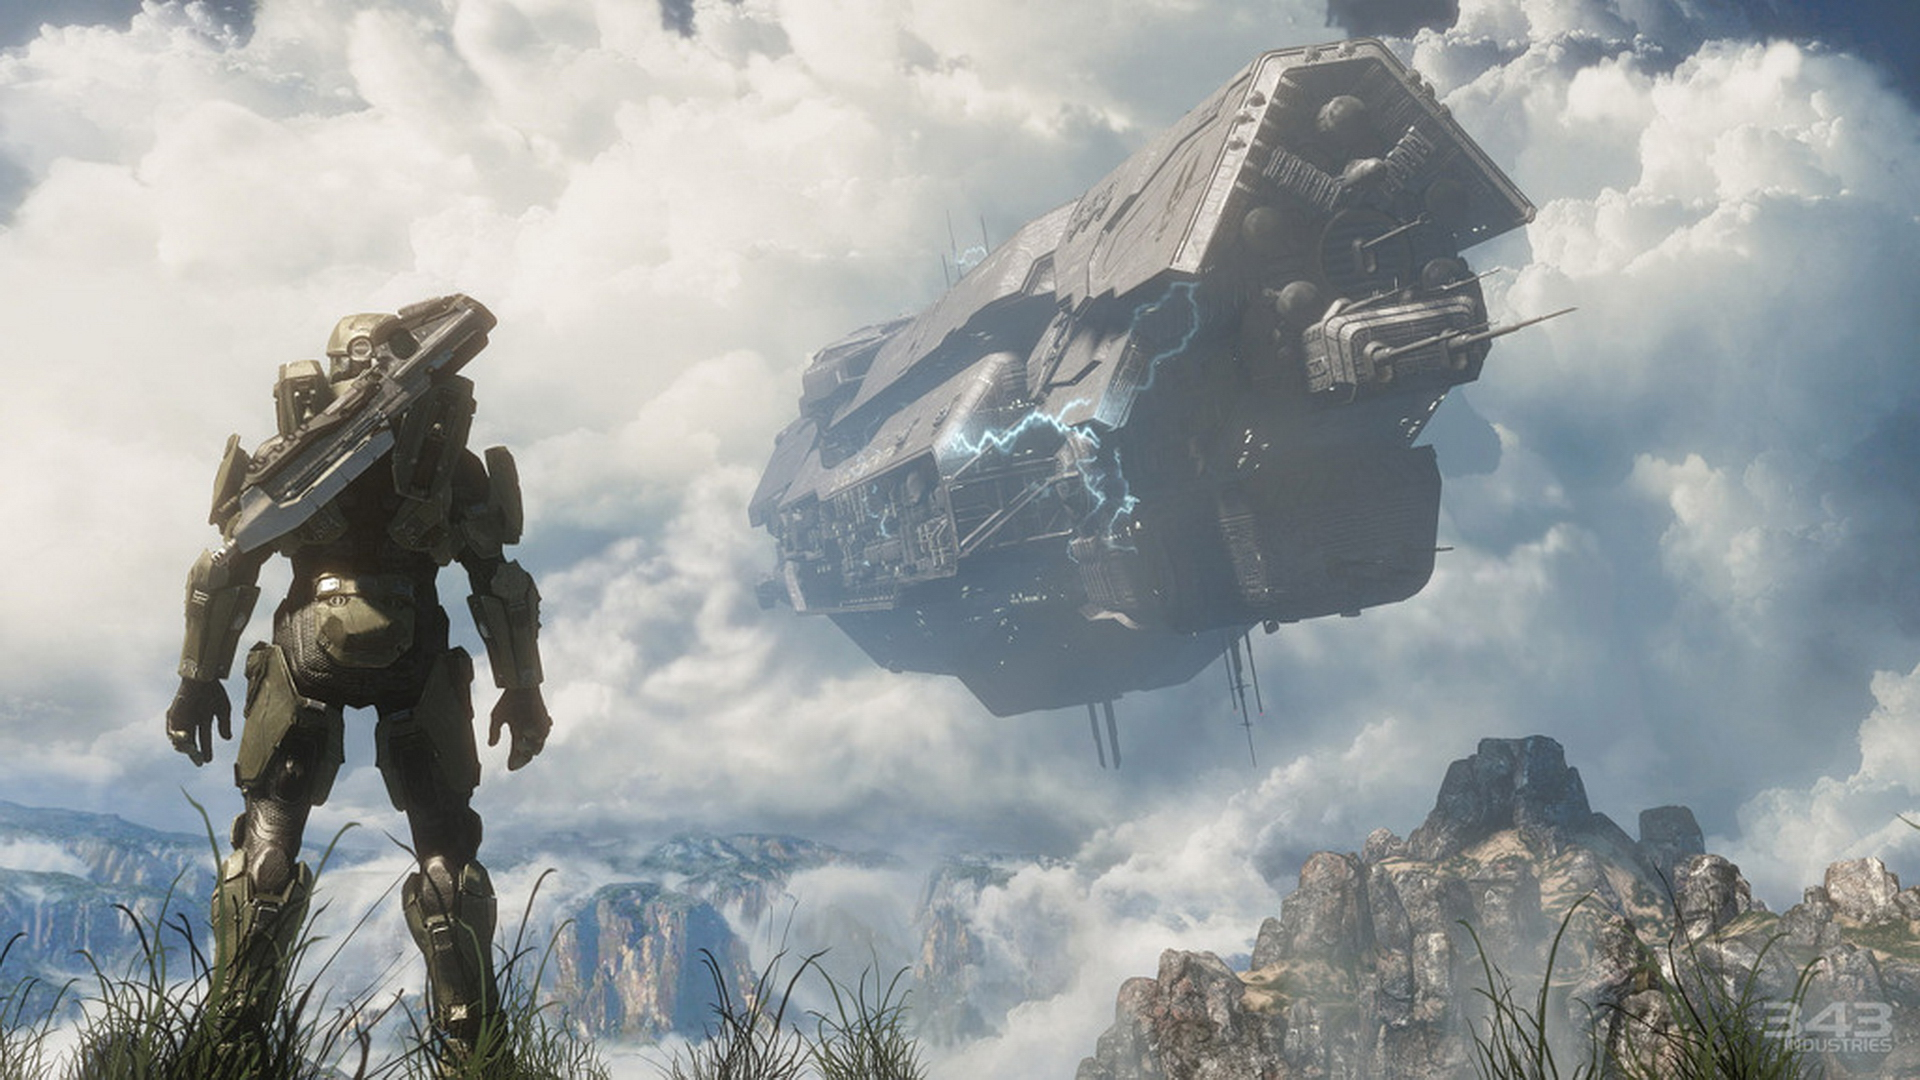 Gaming now halo 4 master chief spartan unsc ship crashing voltagebd Image collections